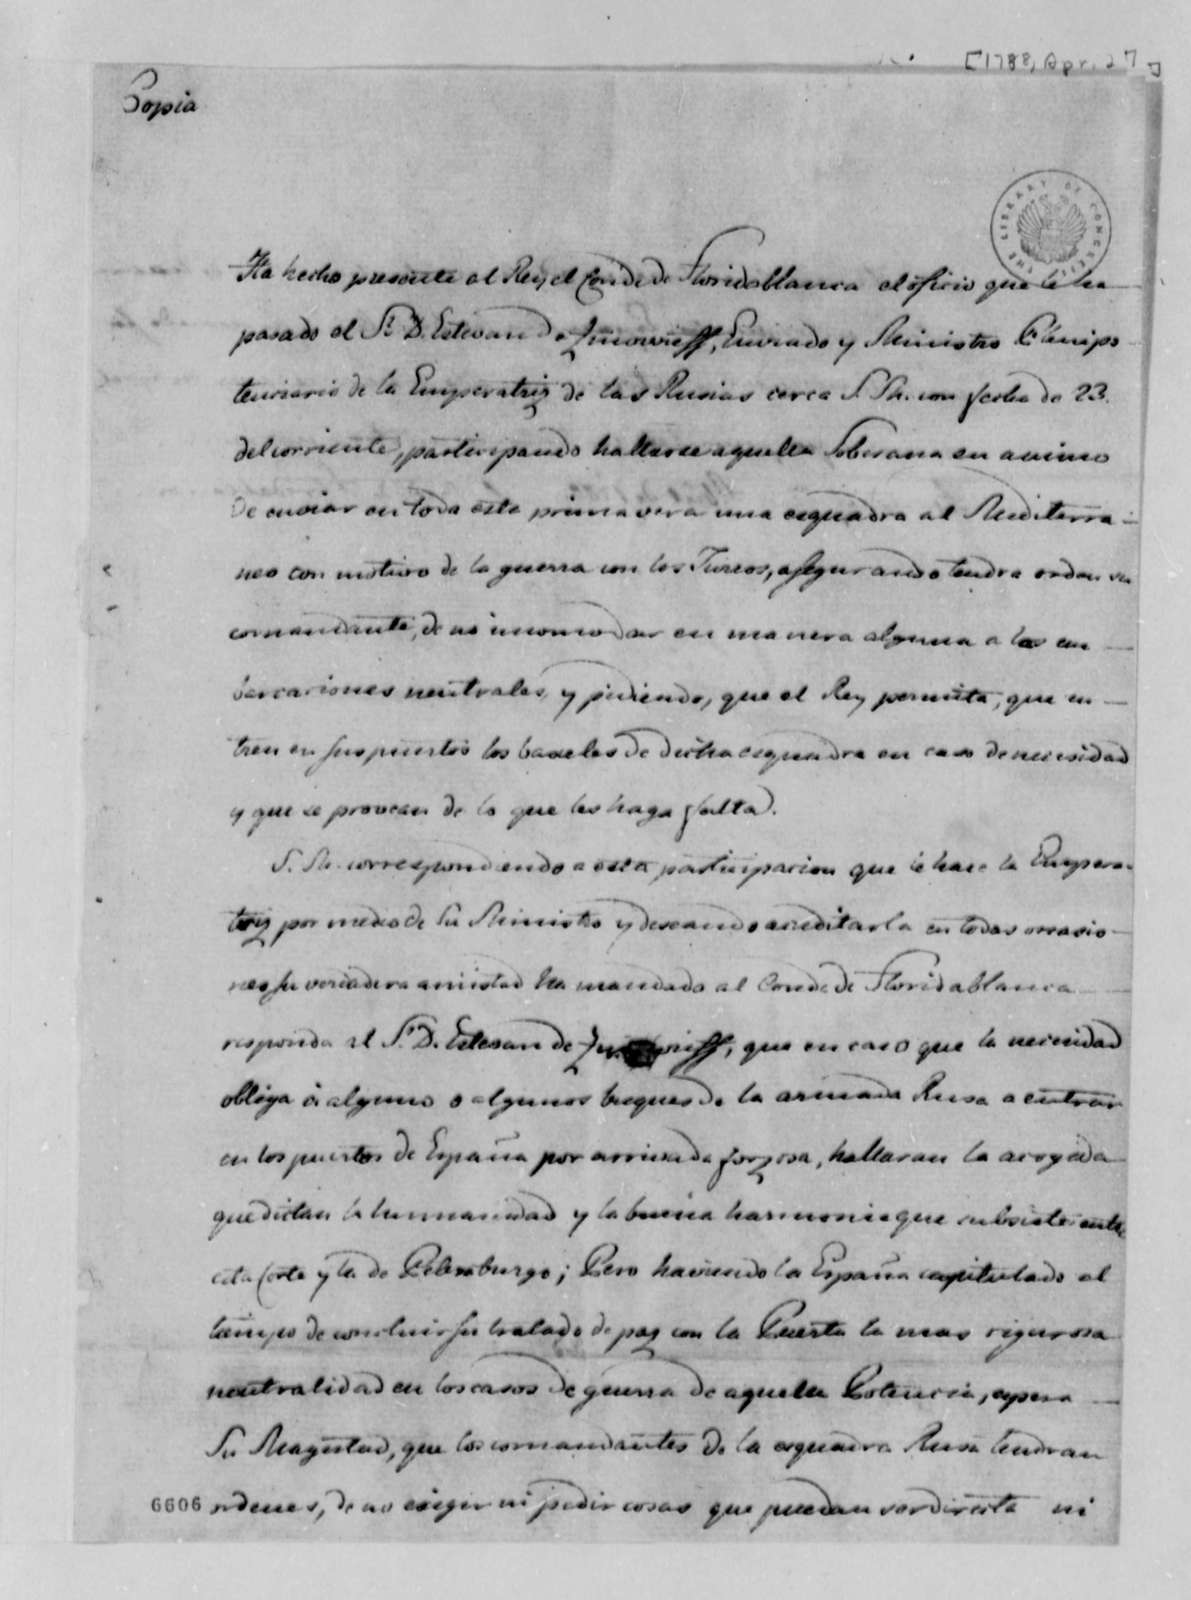 Jose Monino, Conde de Floridablanca to Stephen Zinovieff, April 27, 1788, Permission for Russian Vessels to Enter Spanish Ports Only in Emergency; in Spanish